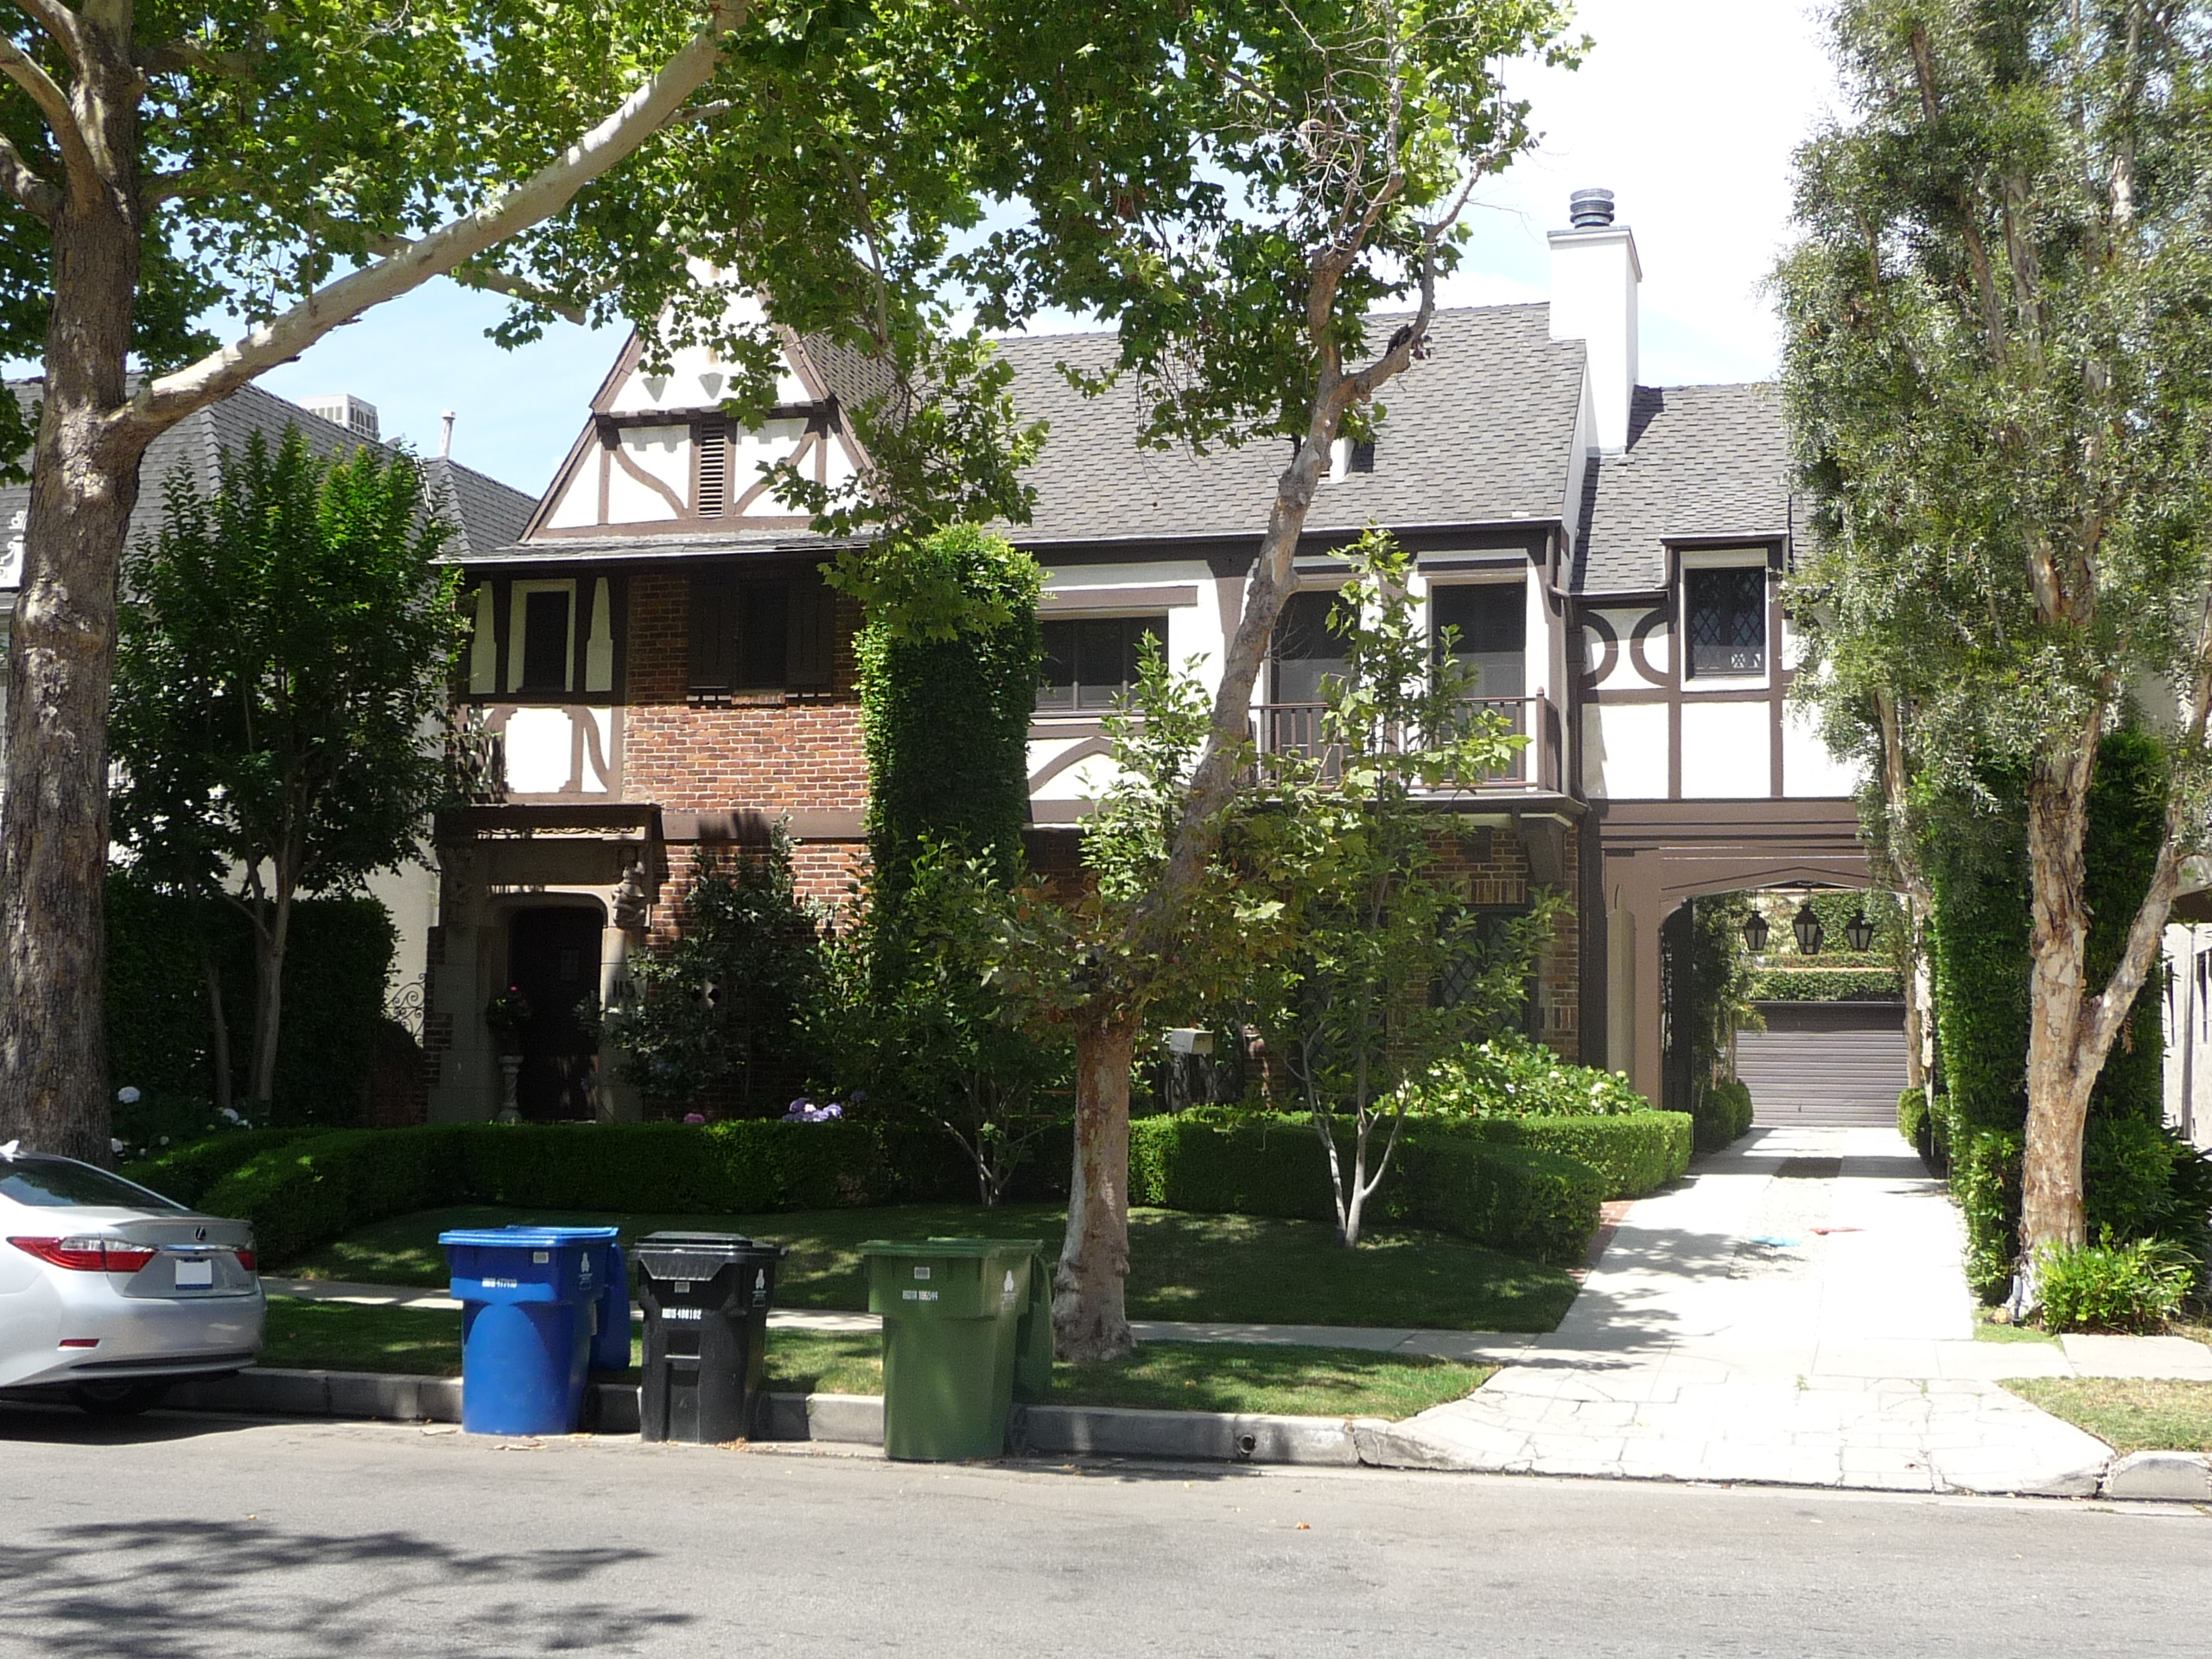 113 S MANSFIELD AVE - PHOTO